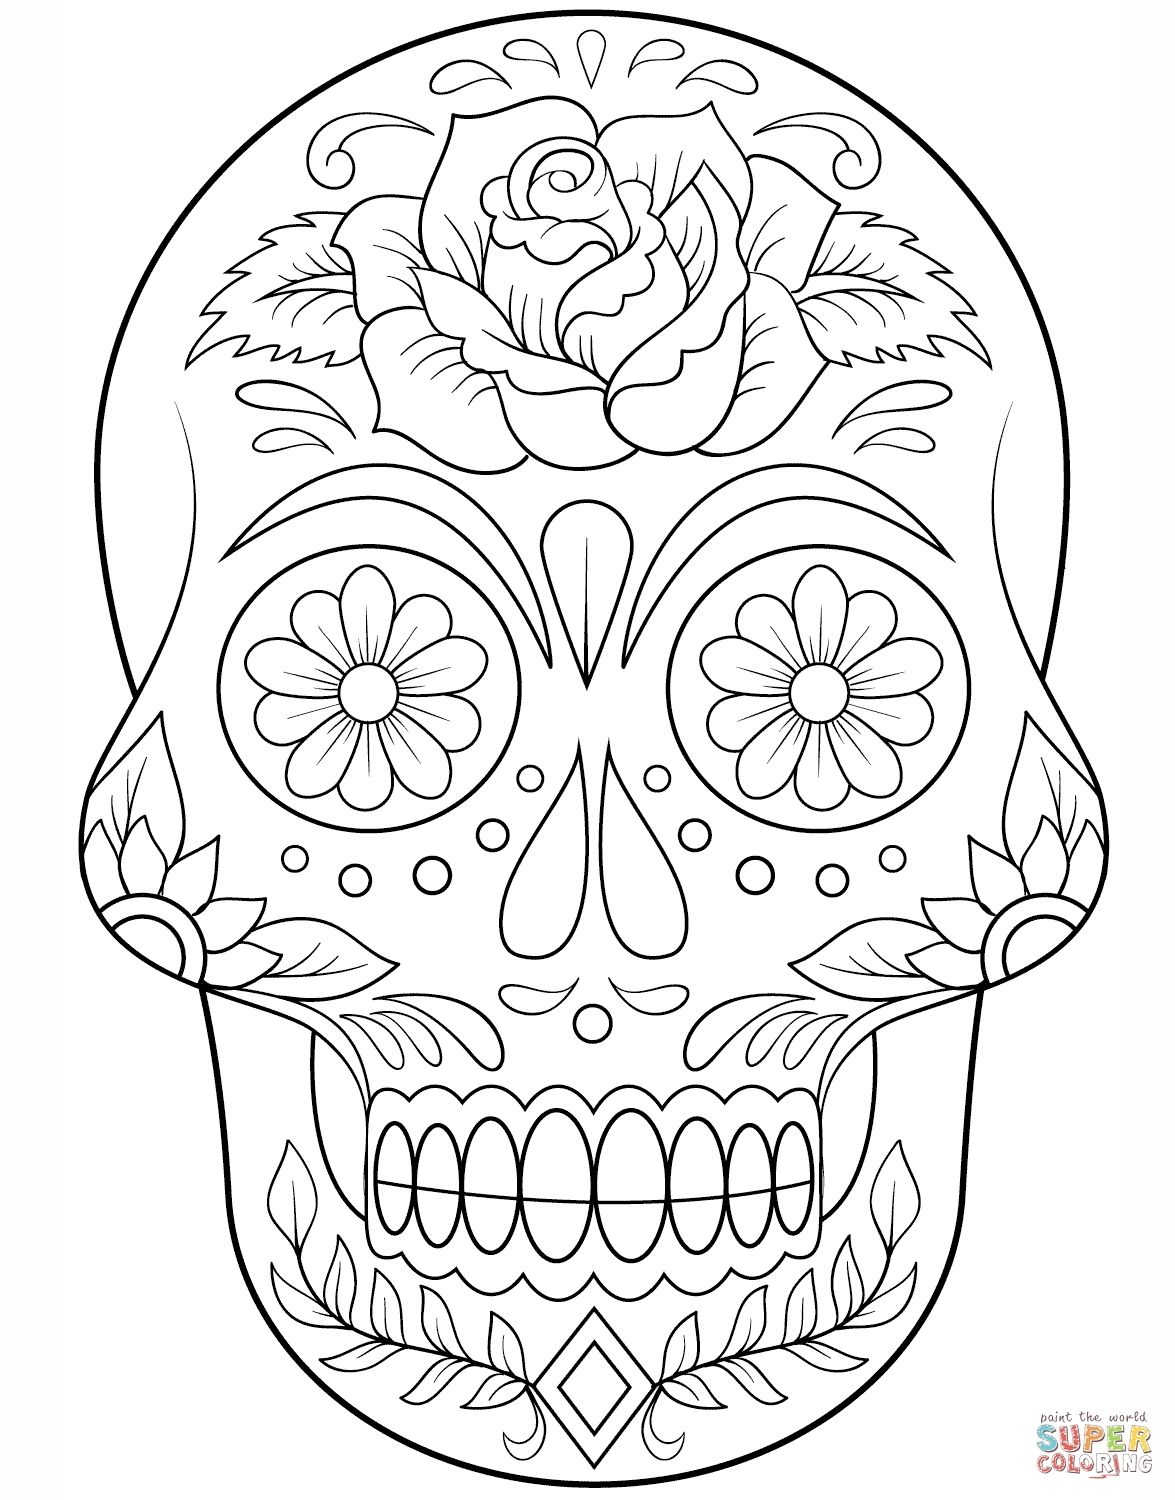 Simple Sugar Skull Coloring Pages 7 T Sugar Skull With Flowers Super Coloring Christm Skull Coloring Pages Halloween Coloring Pages Flower Coloring Pages